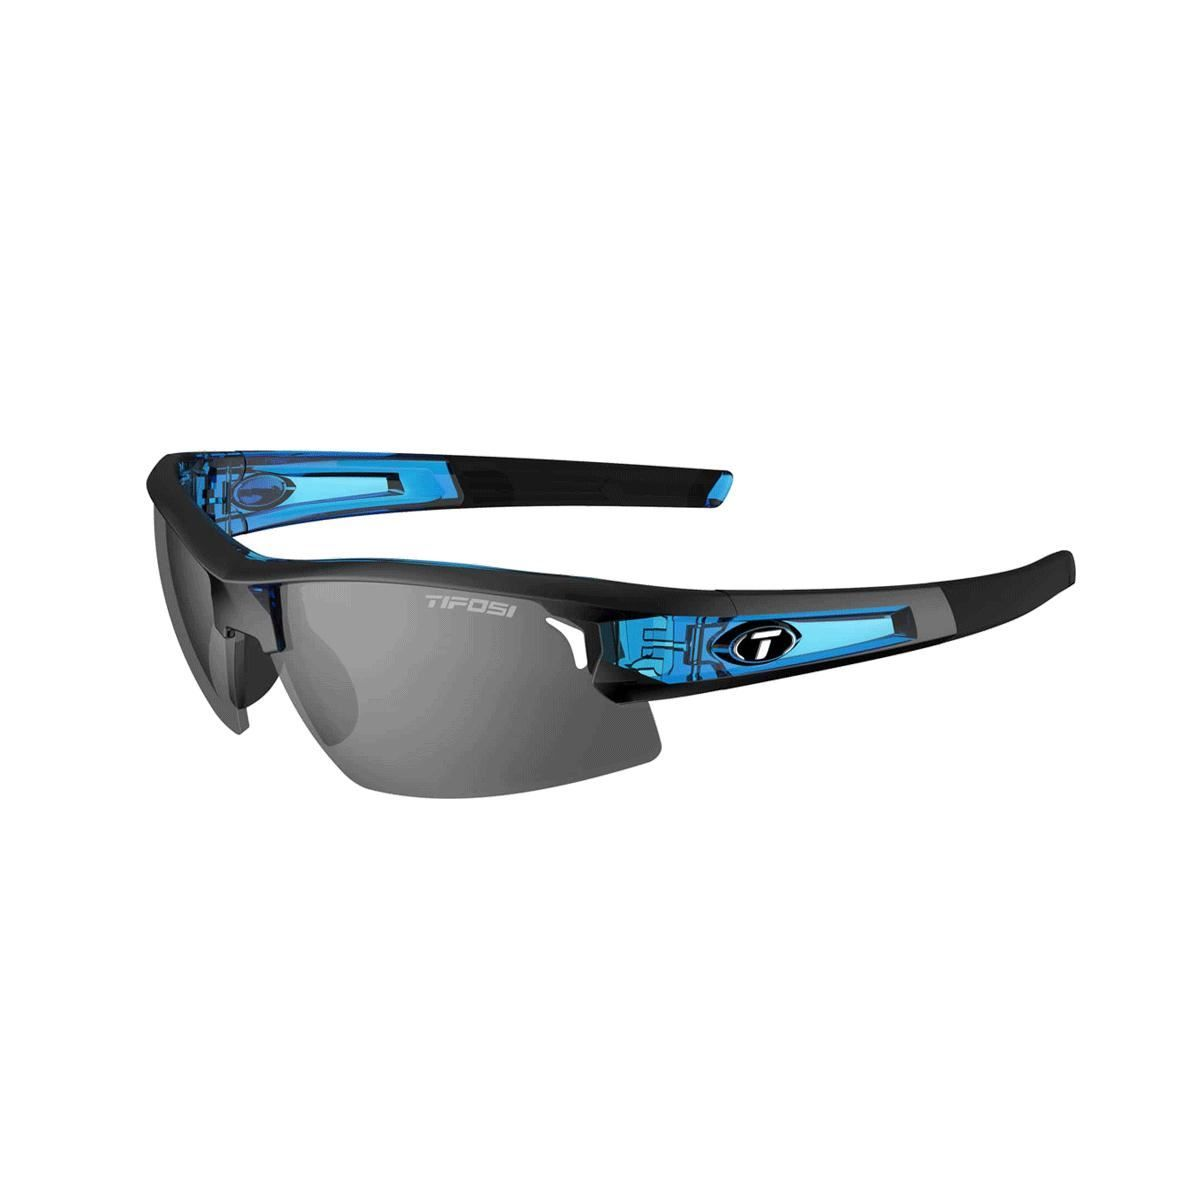 Tifosi Synapse Interchangeable Lens Sunglasses 2018: Crystal Blue